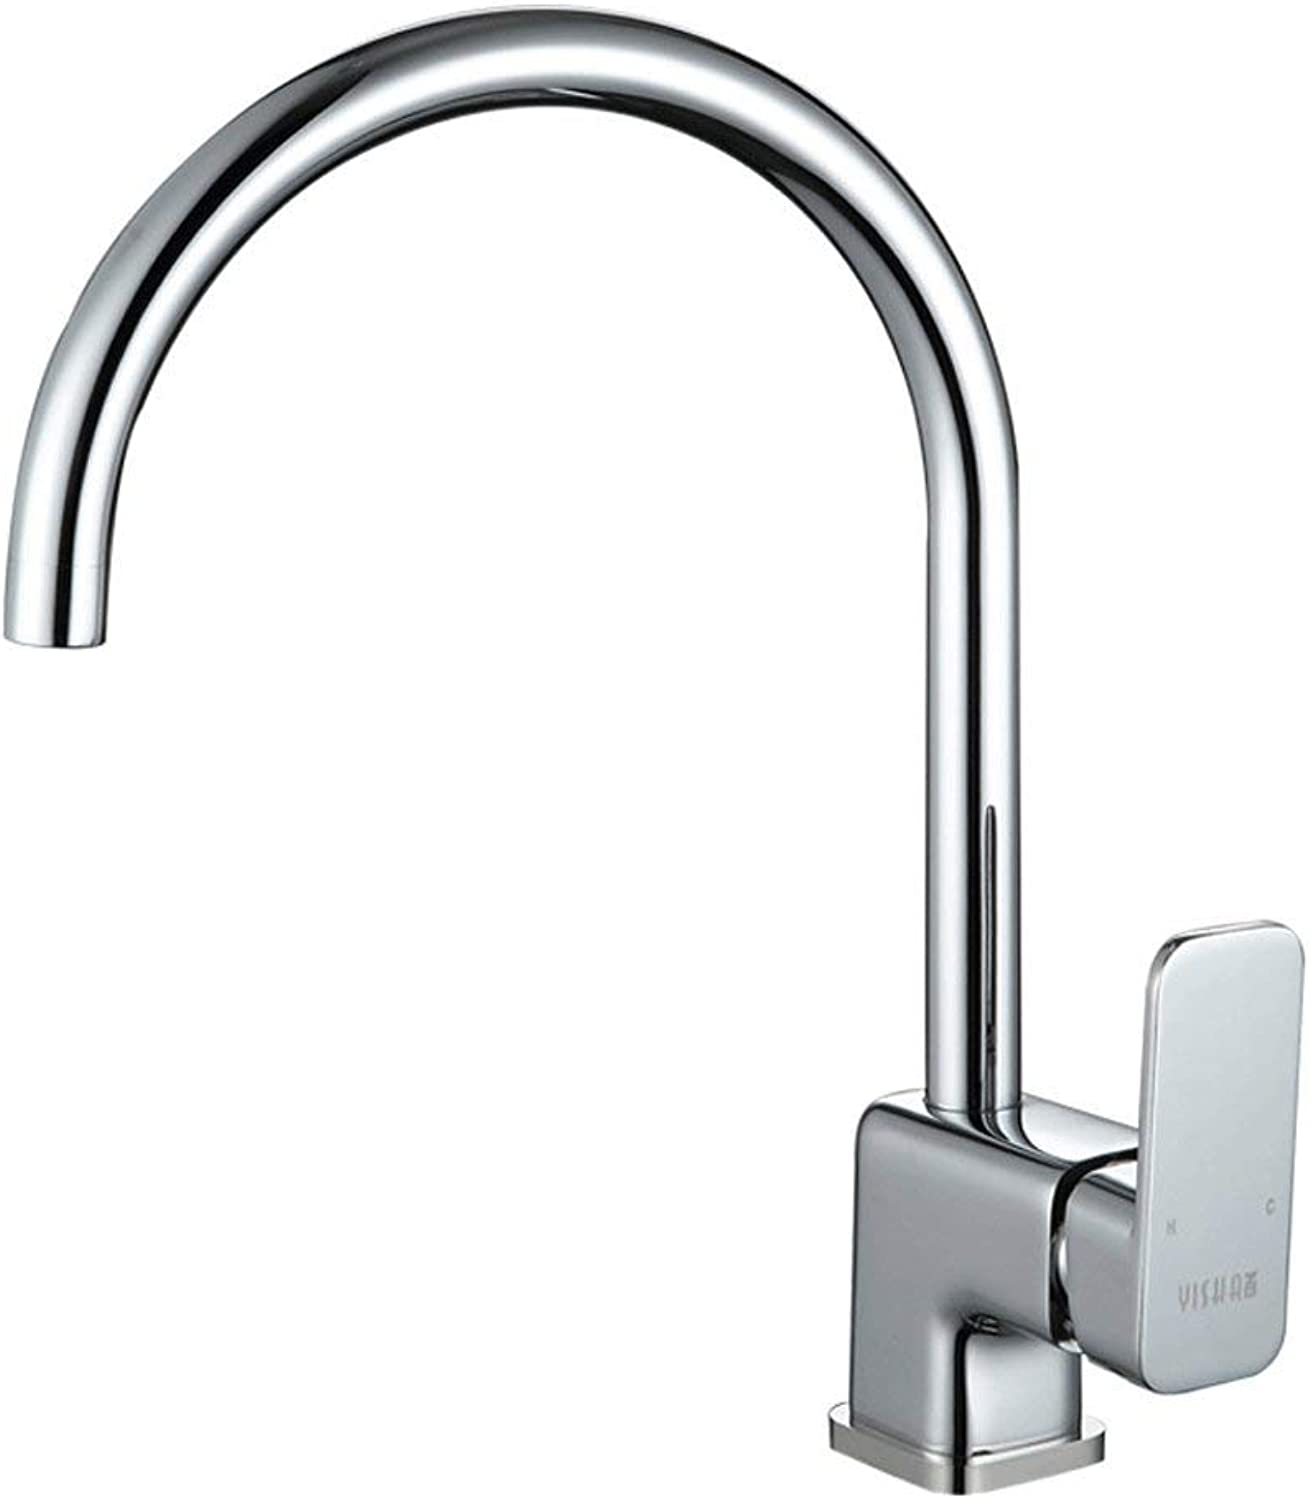 DYR Faucet Copper Kitchen Hot and Cold Water Faucet Spleen Faucet Single Handle Single Hole Square redatable Tap